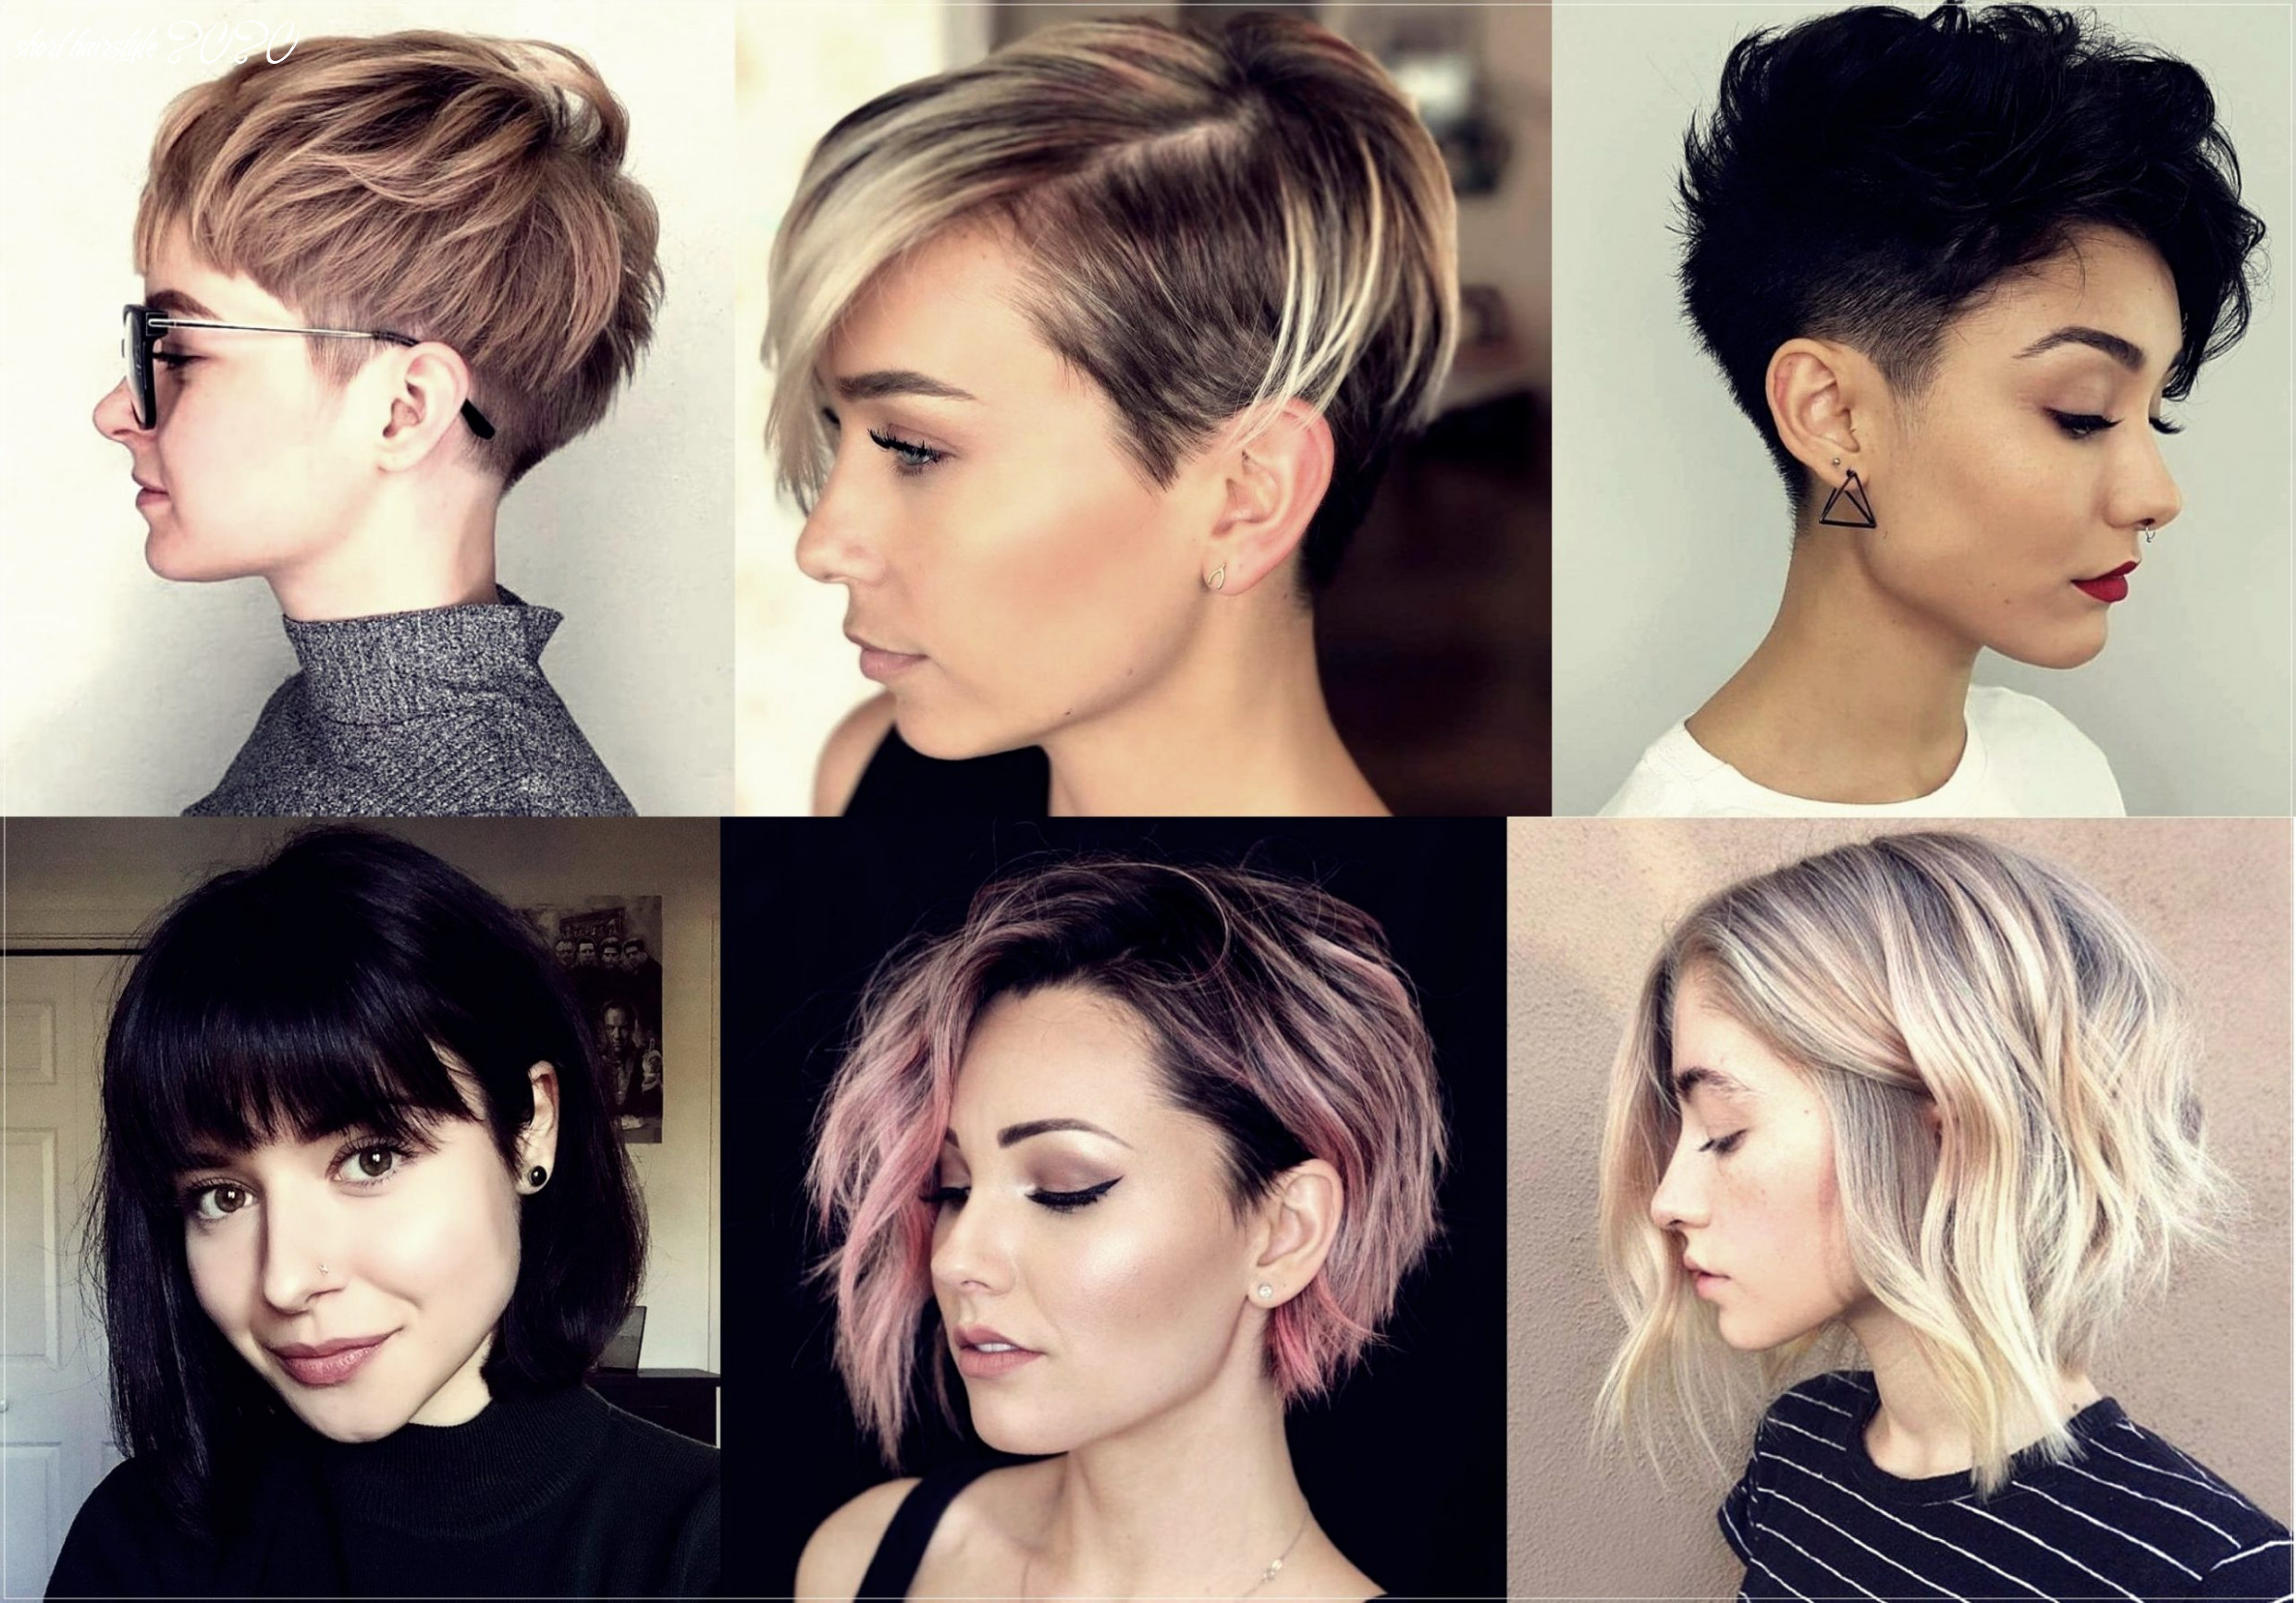 Short haircuts 12: 12 photos and trends   short hairstyle 2020